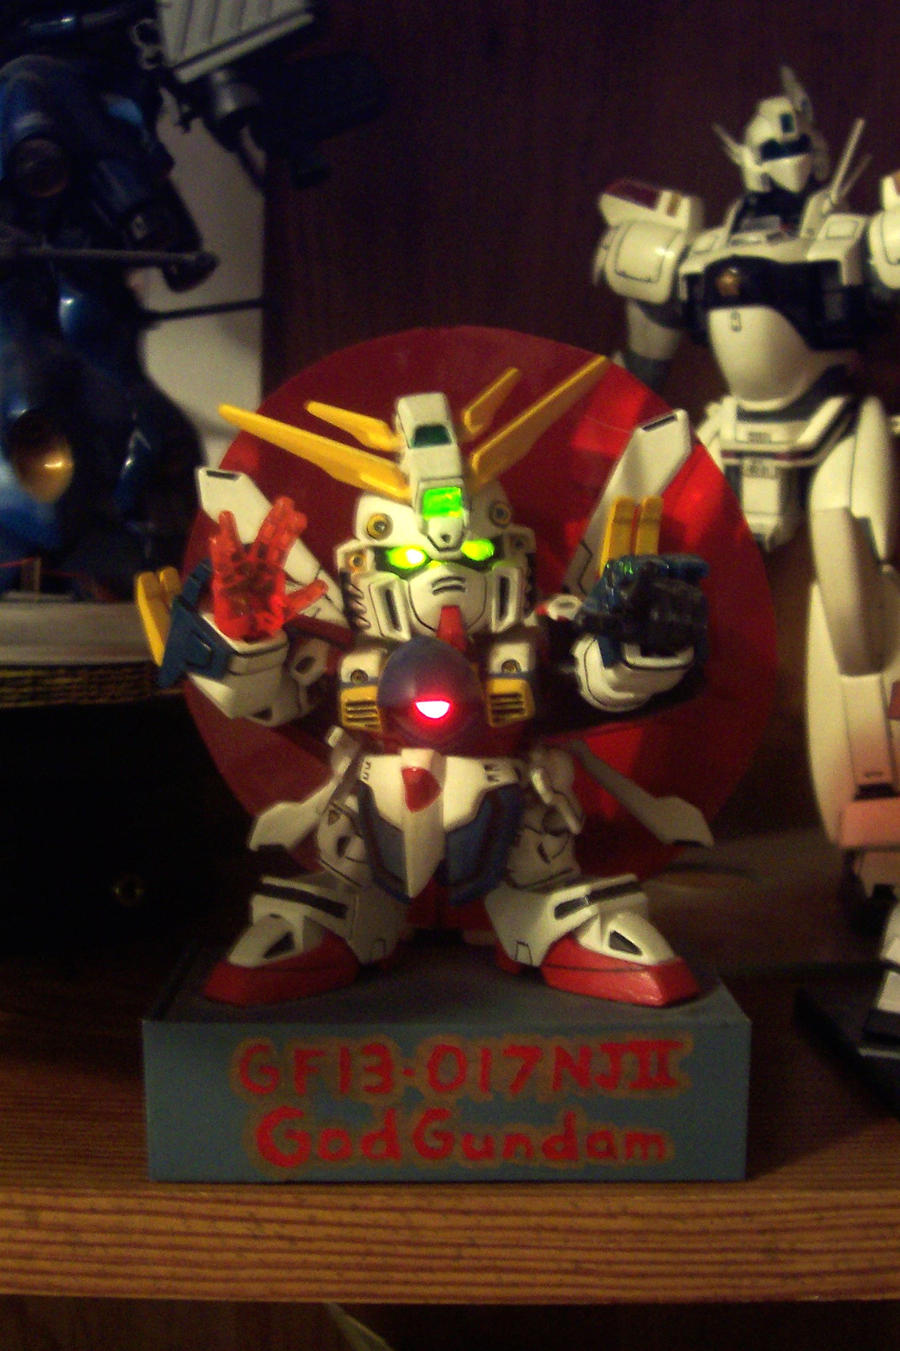 SD God Gundam Lit by HDorsettcase